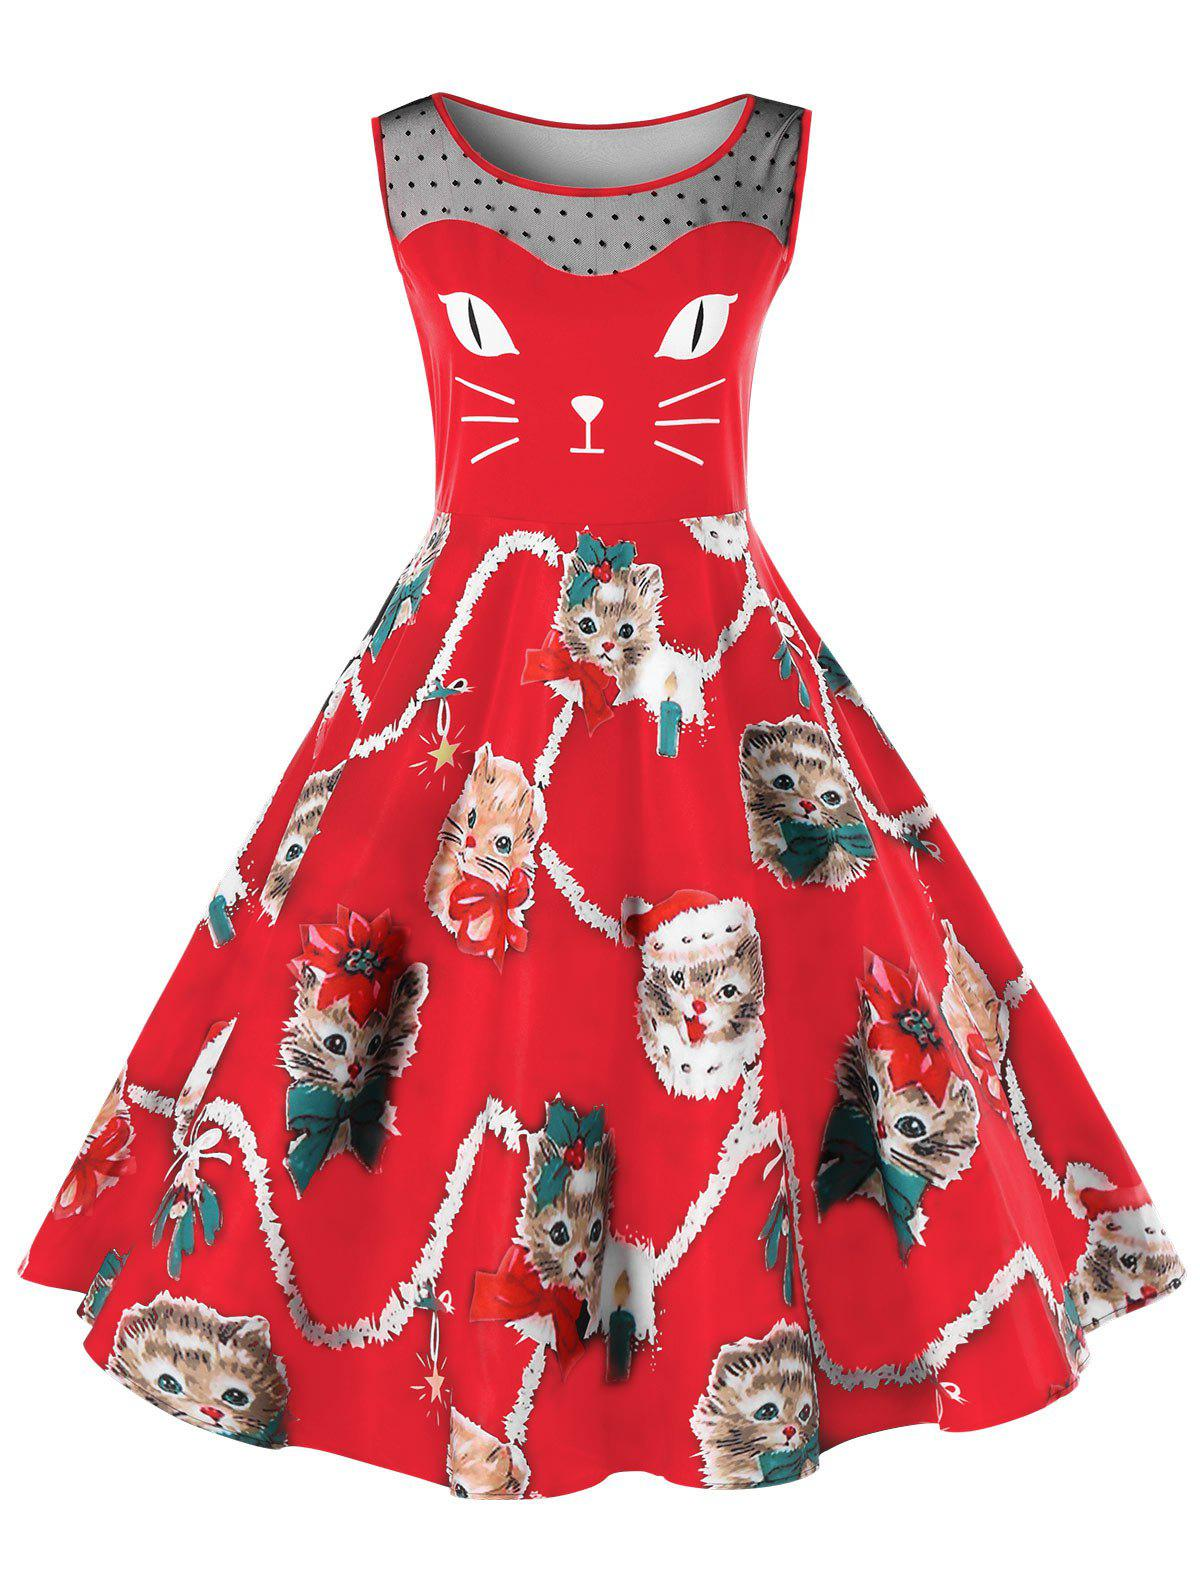 Christmas Plus Size Kitten Pattern Swing DressWOMEN<br><br>Size: 5XL; Color: BRIGHT RED; Style: Vintage; Material: Polyester,Spandex; Silhouette: A-Line; Dresses Length: Knee-Length; Neckline: Round Collar; Sleeve Length: Sleeveless; Pattern Type: Animal; With Belt: No; Season: Fall,Spring,Summer; Weight: 0.3000kg; Package Contents: 1 x Dress;